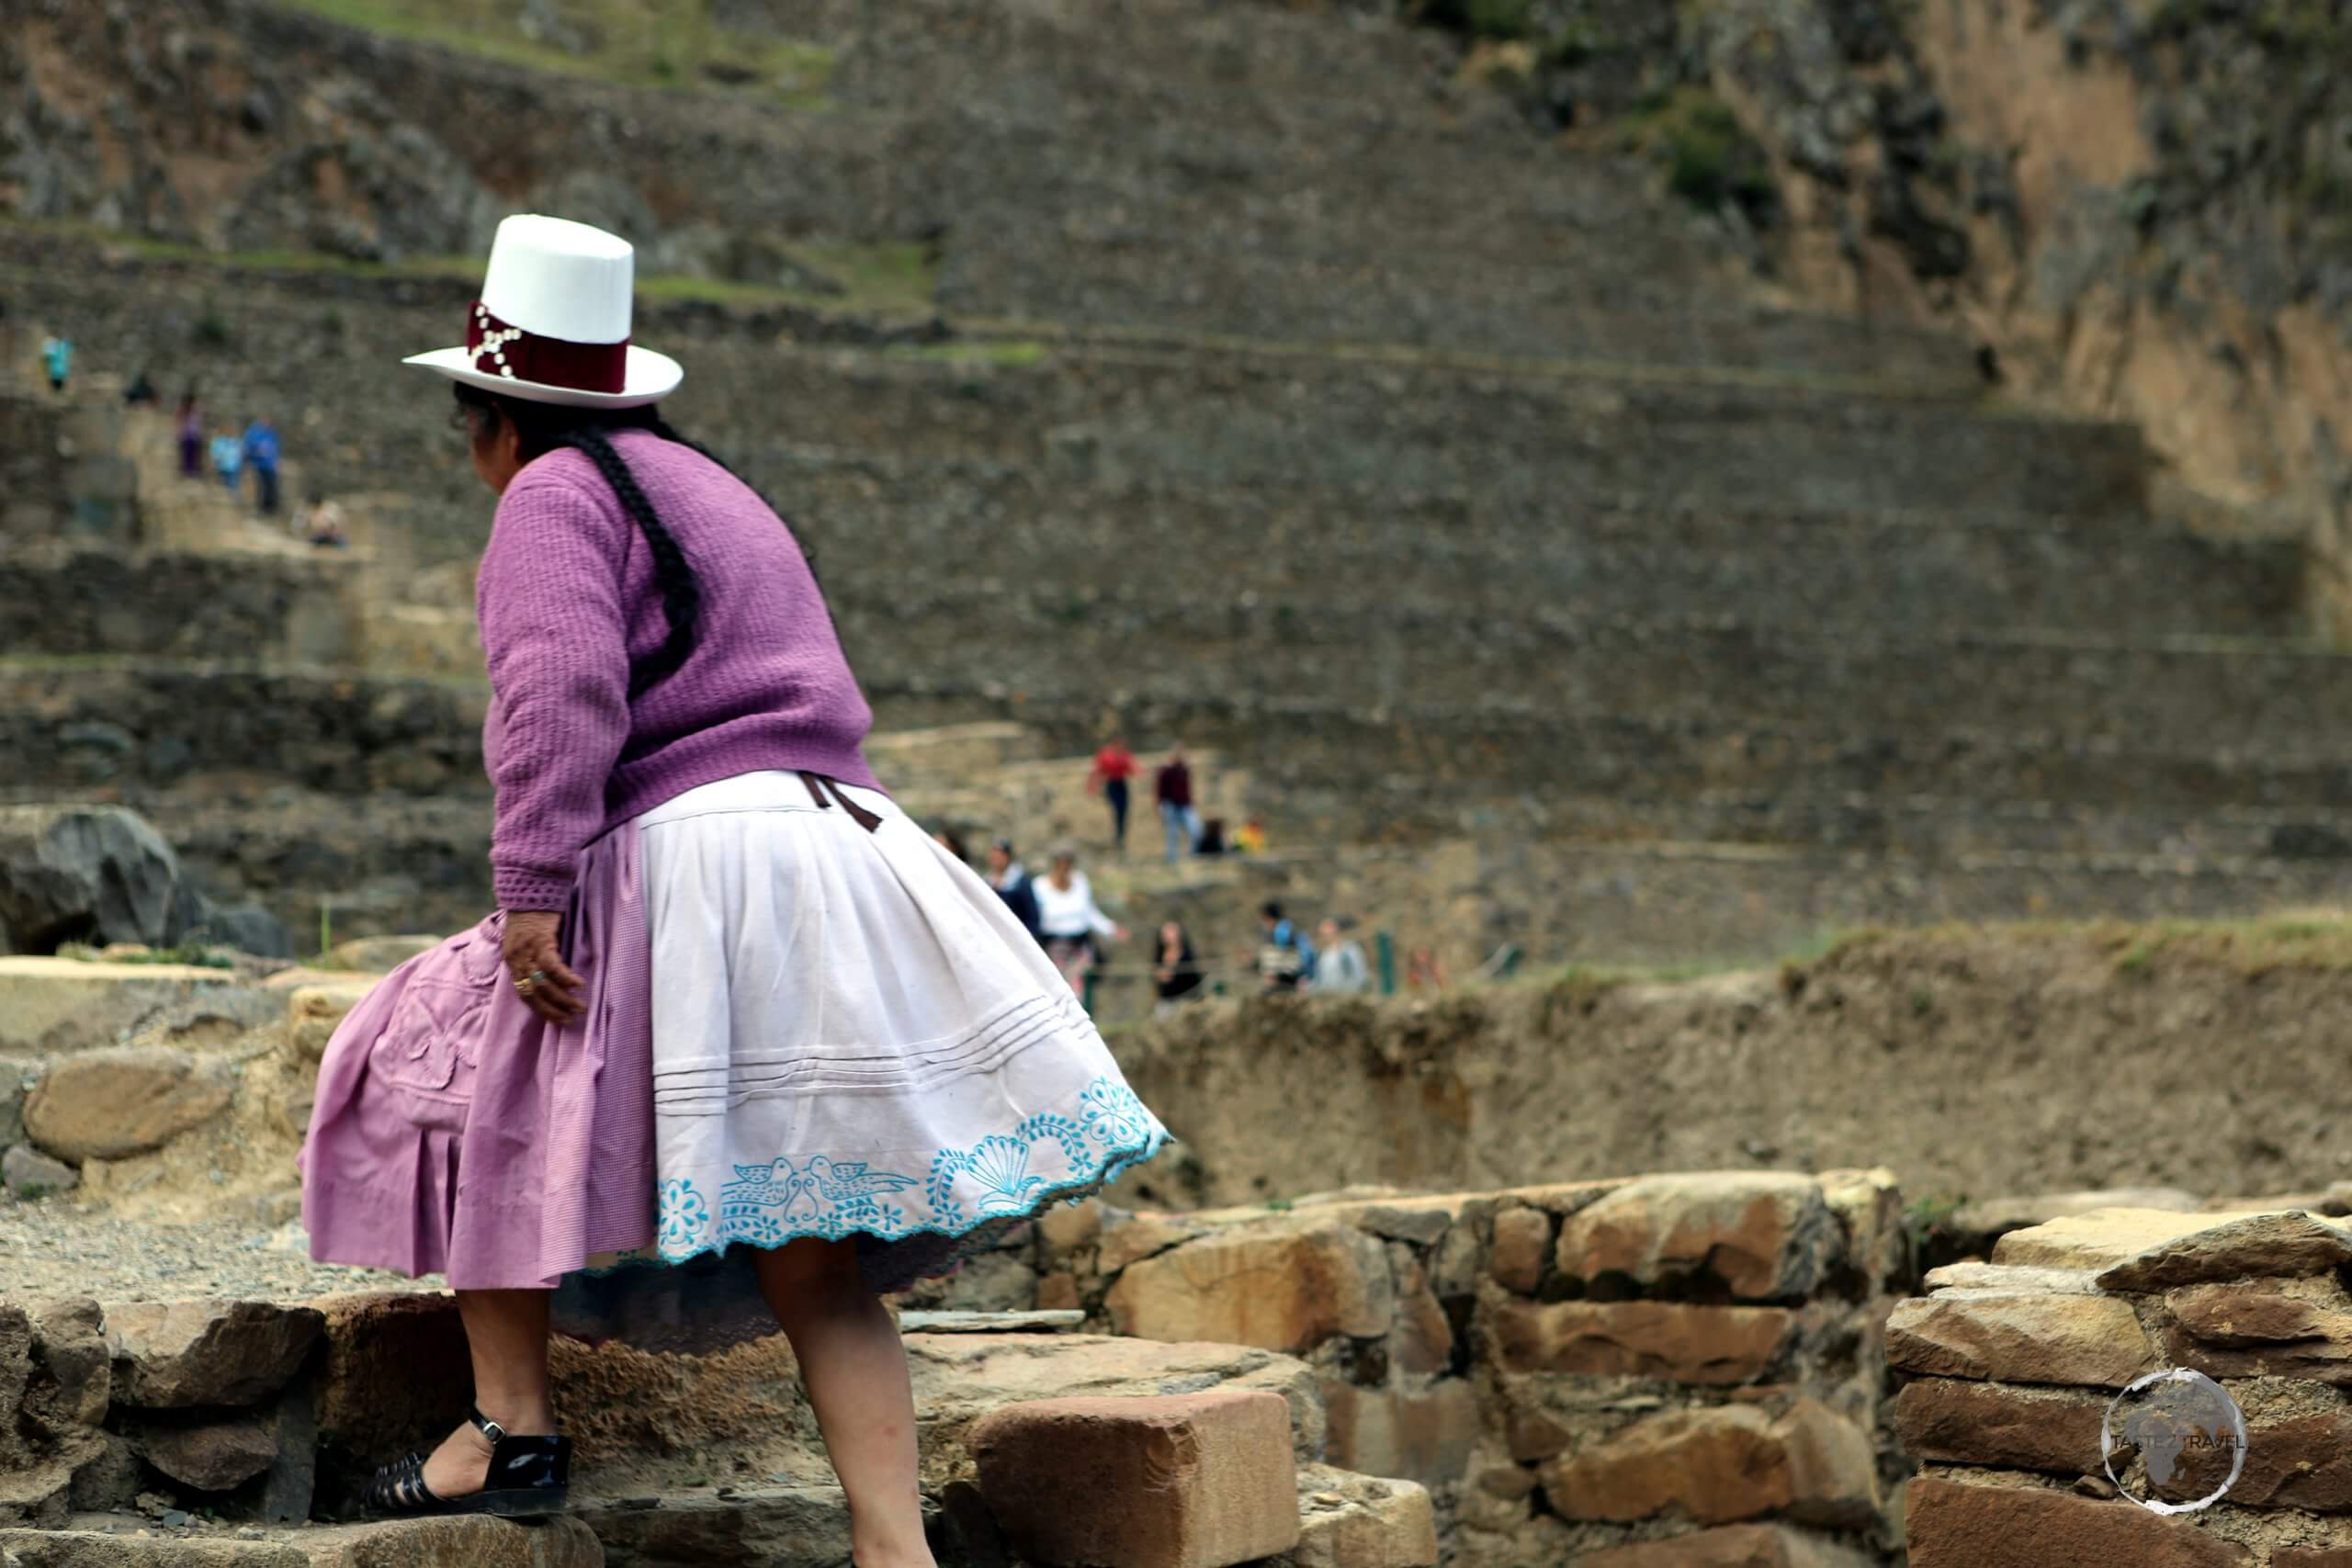 A Peruvian tourist, exploring Ollantaytambo ruins. Built in the 1400s, the large Inca fortress soars above the cobbled streets of Ollantaytambo town, 95 km north of Cuzco.